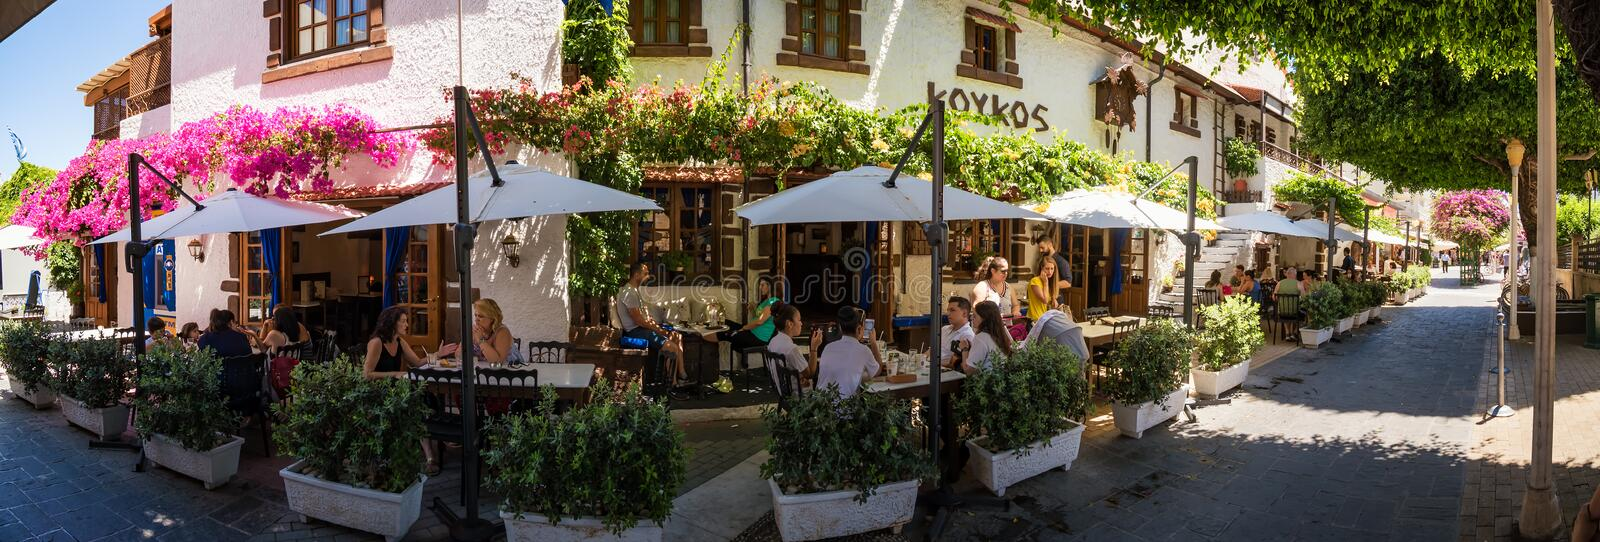 RHODES, GREECE - JUNE 29 2018: People relaxing in traditional. Restaurant in city of Rhodes royalty free stock image